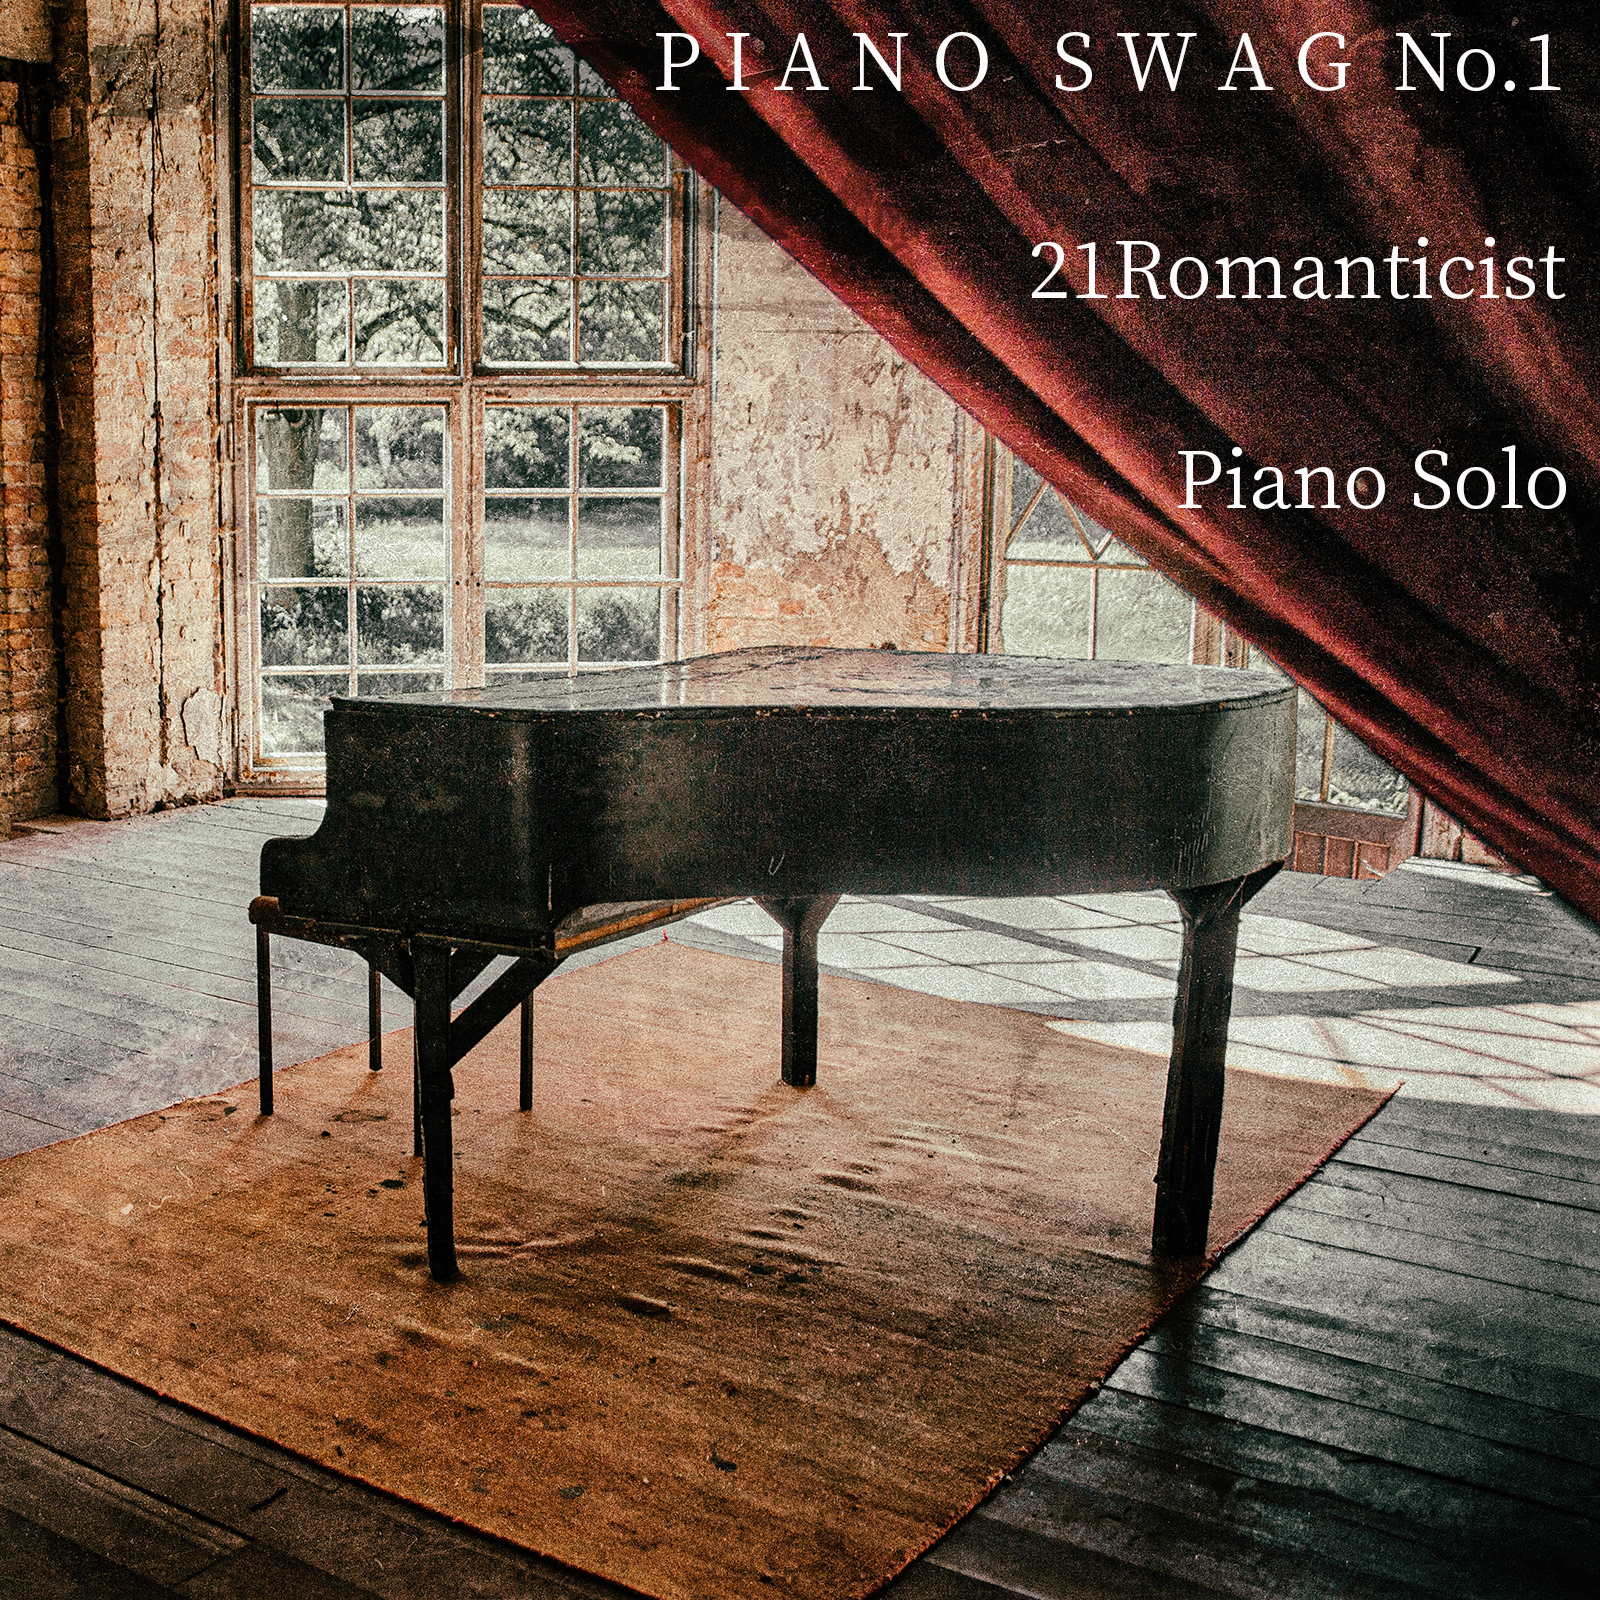 Piano Swag No.1